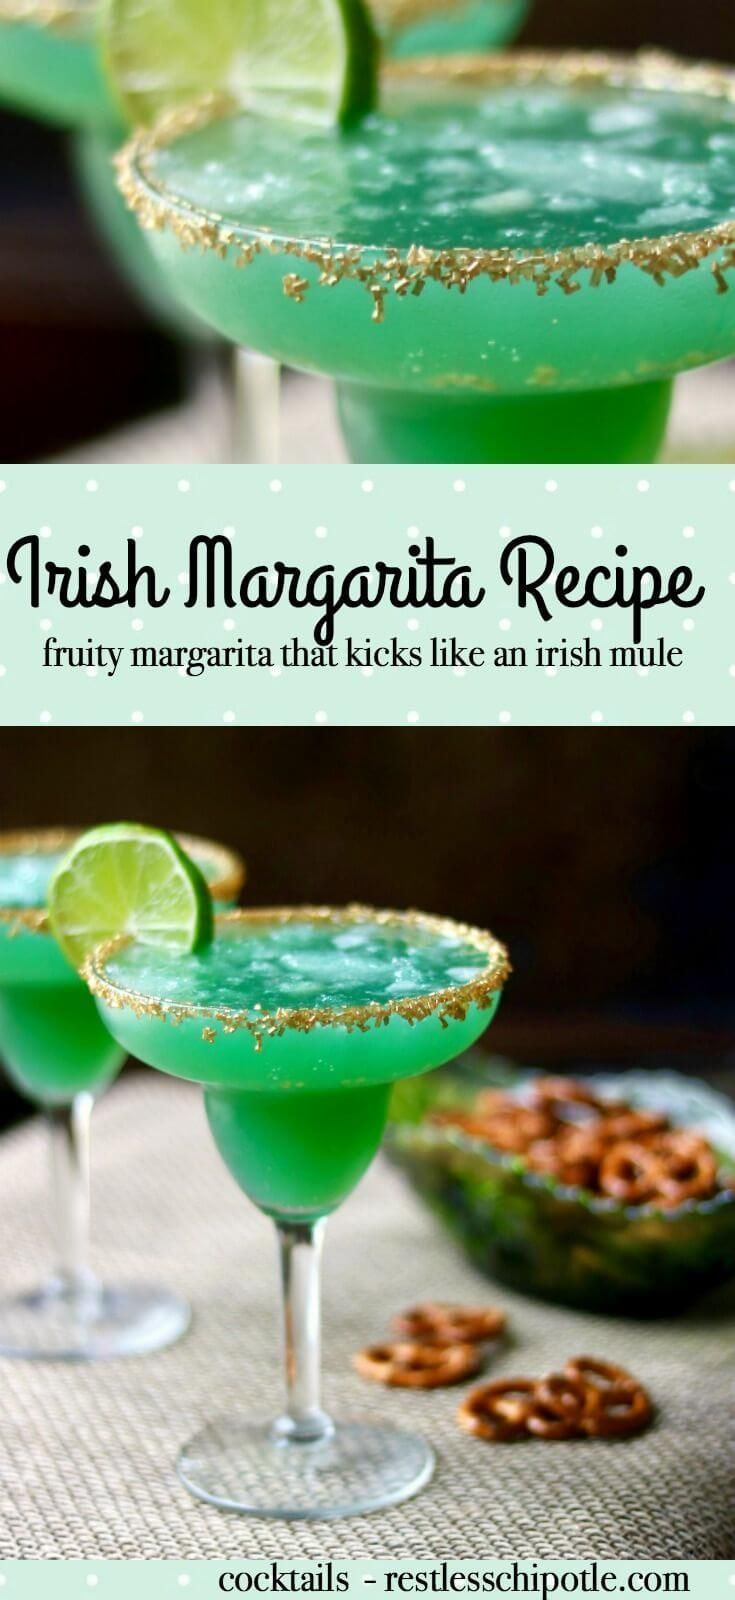 The perfect green cocktail for St Patrick's Day!Irish margarita recipe is made with tequila, Irish whiskey, and pineapple juice - a fruity drink with a kick like an Irish mule! So good! From RestlessChipotle.com via @Marye at Restless Chipotle